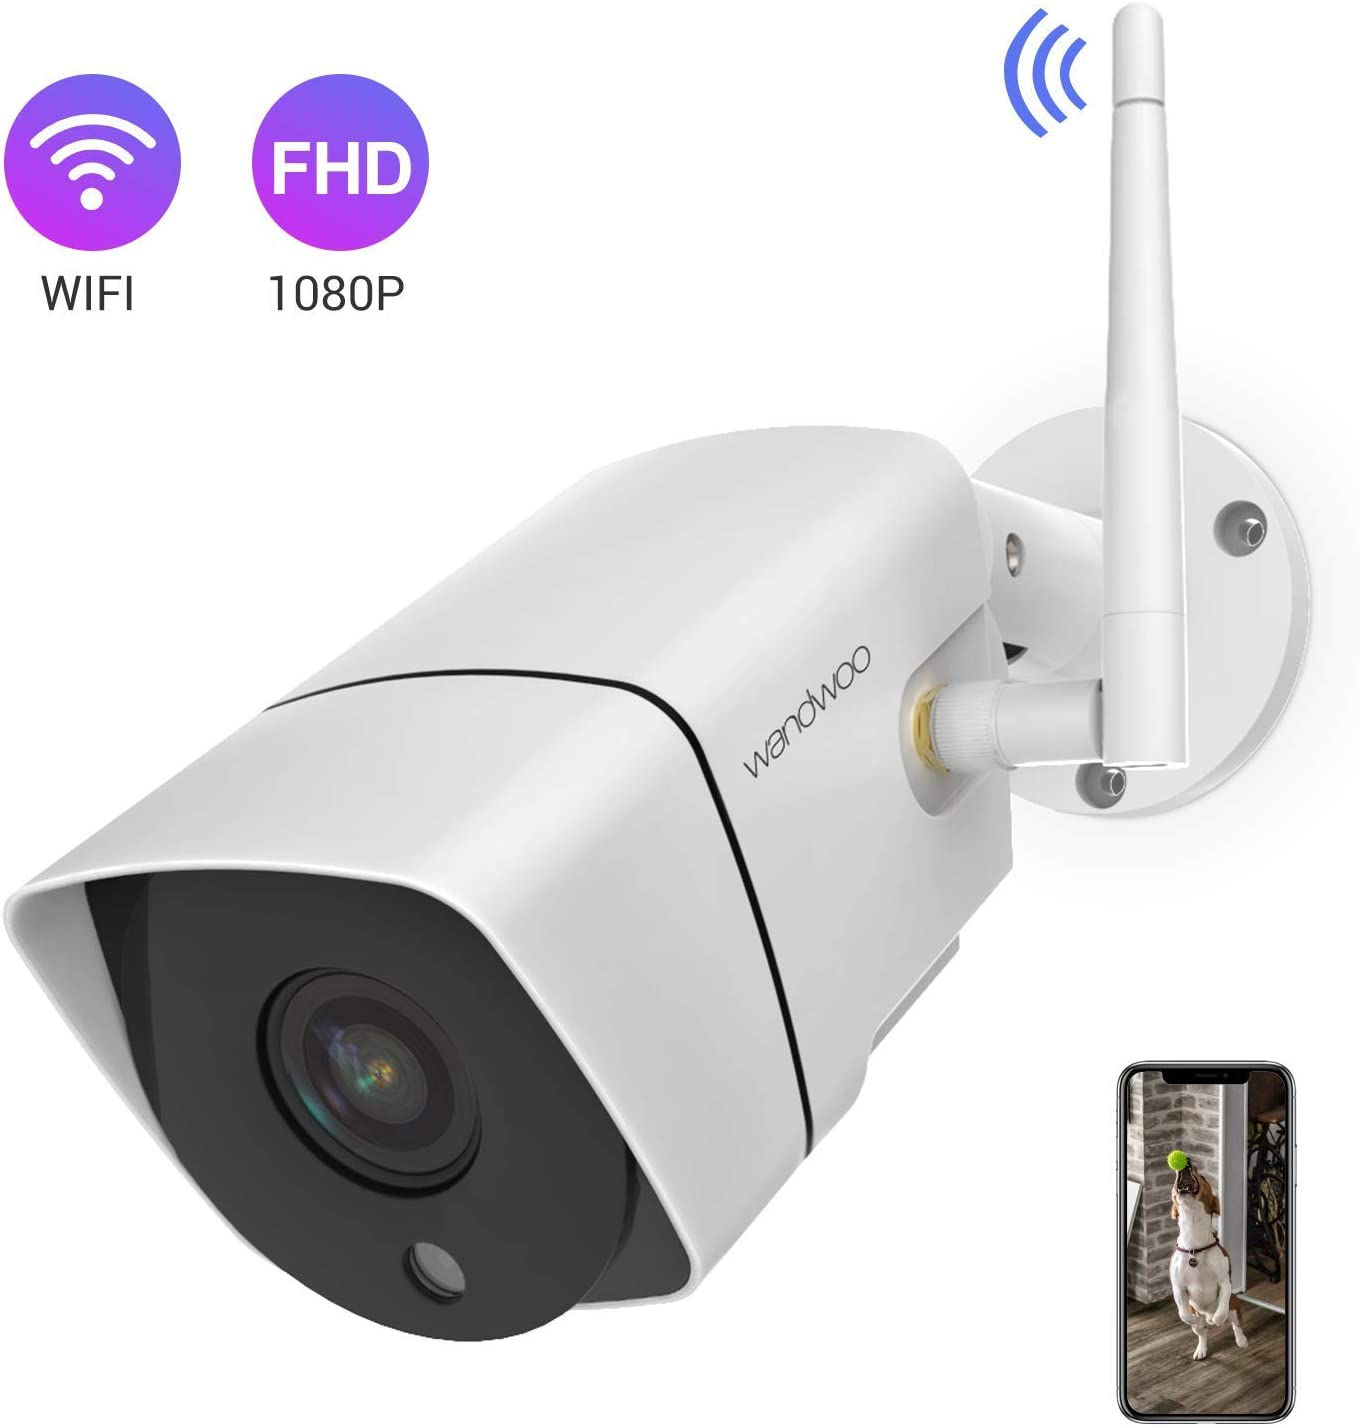 Security Camera Outdoor,Wandwoo 1080P Wireless WiFi IP Camera Support Motion Detection with Real-Time Alert,Waterproof,Night Vision,Outside Camera with SD Card Cloud Storage- iOS,Android App